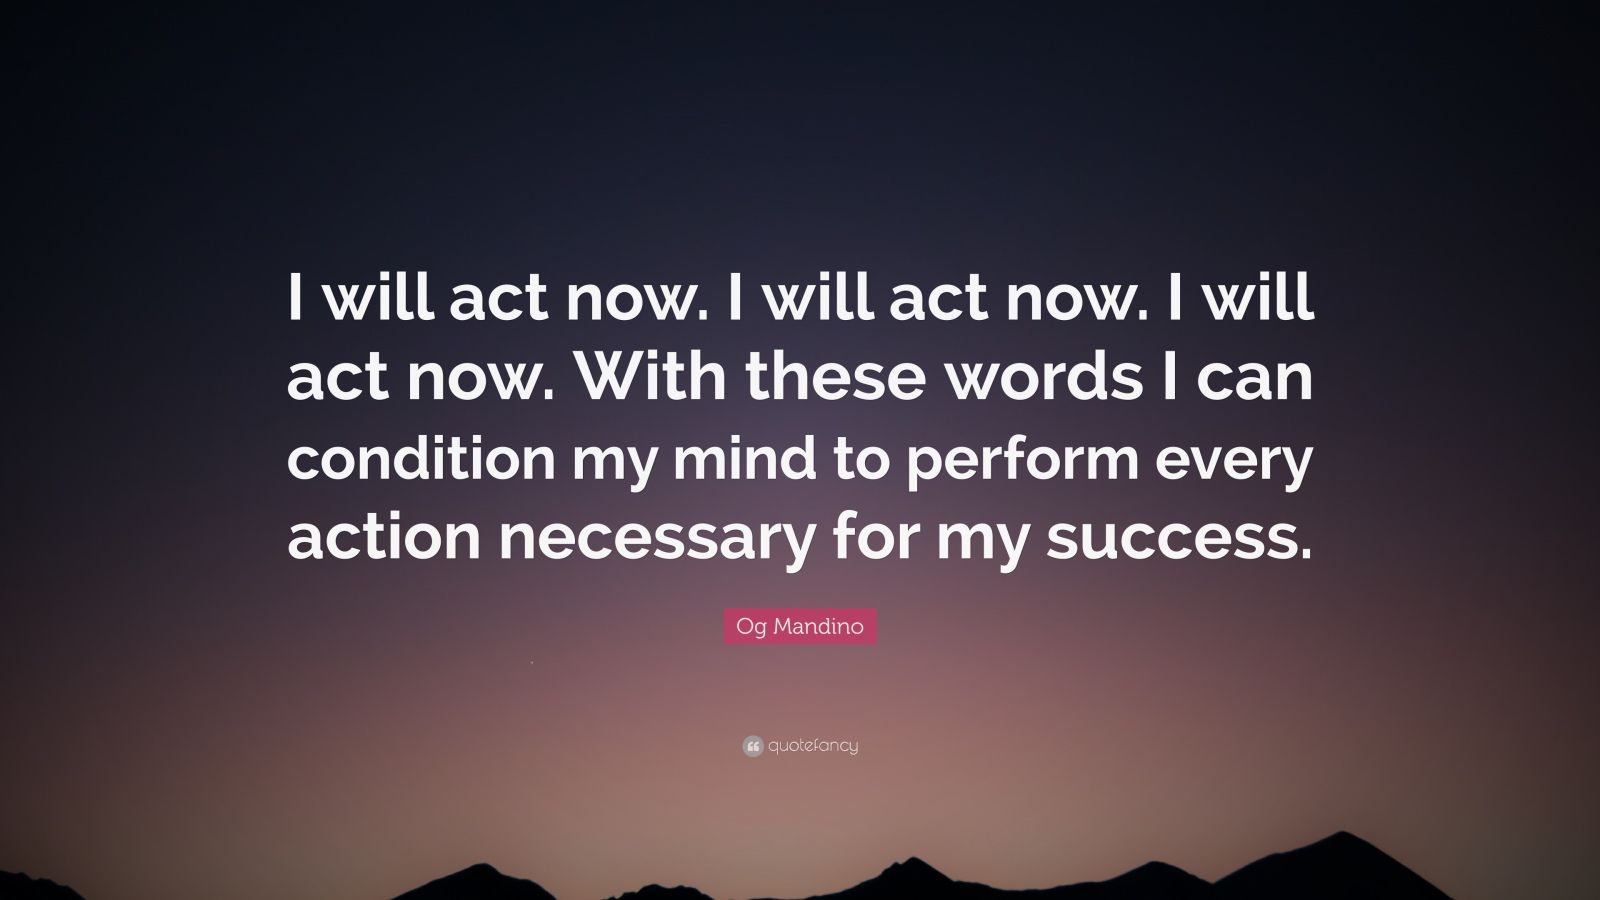 "Og Mandino Quote: ""I will act now. I will act now. I will act now. With these words I can condition my mind to perform every action necessary for my success."""